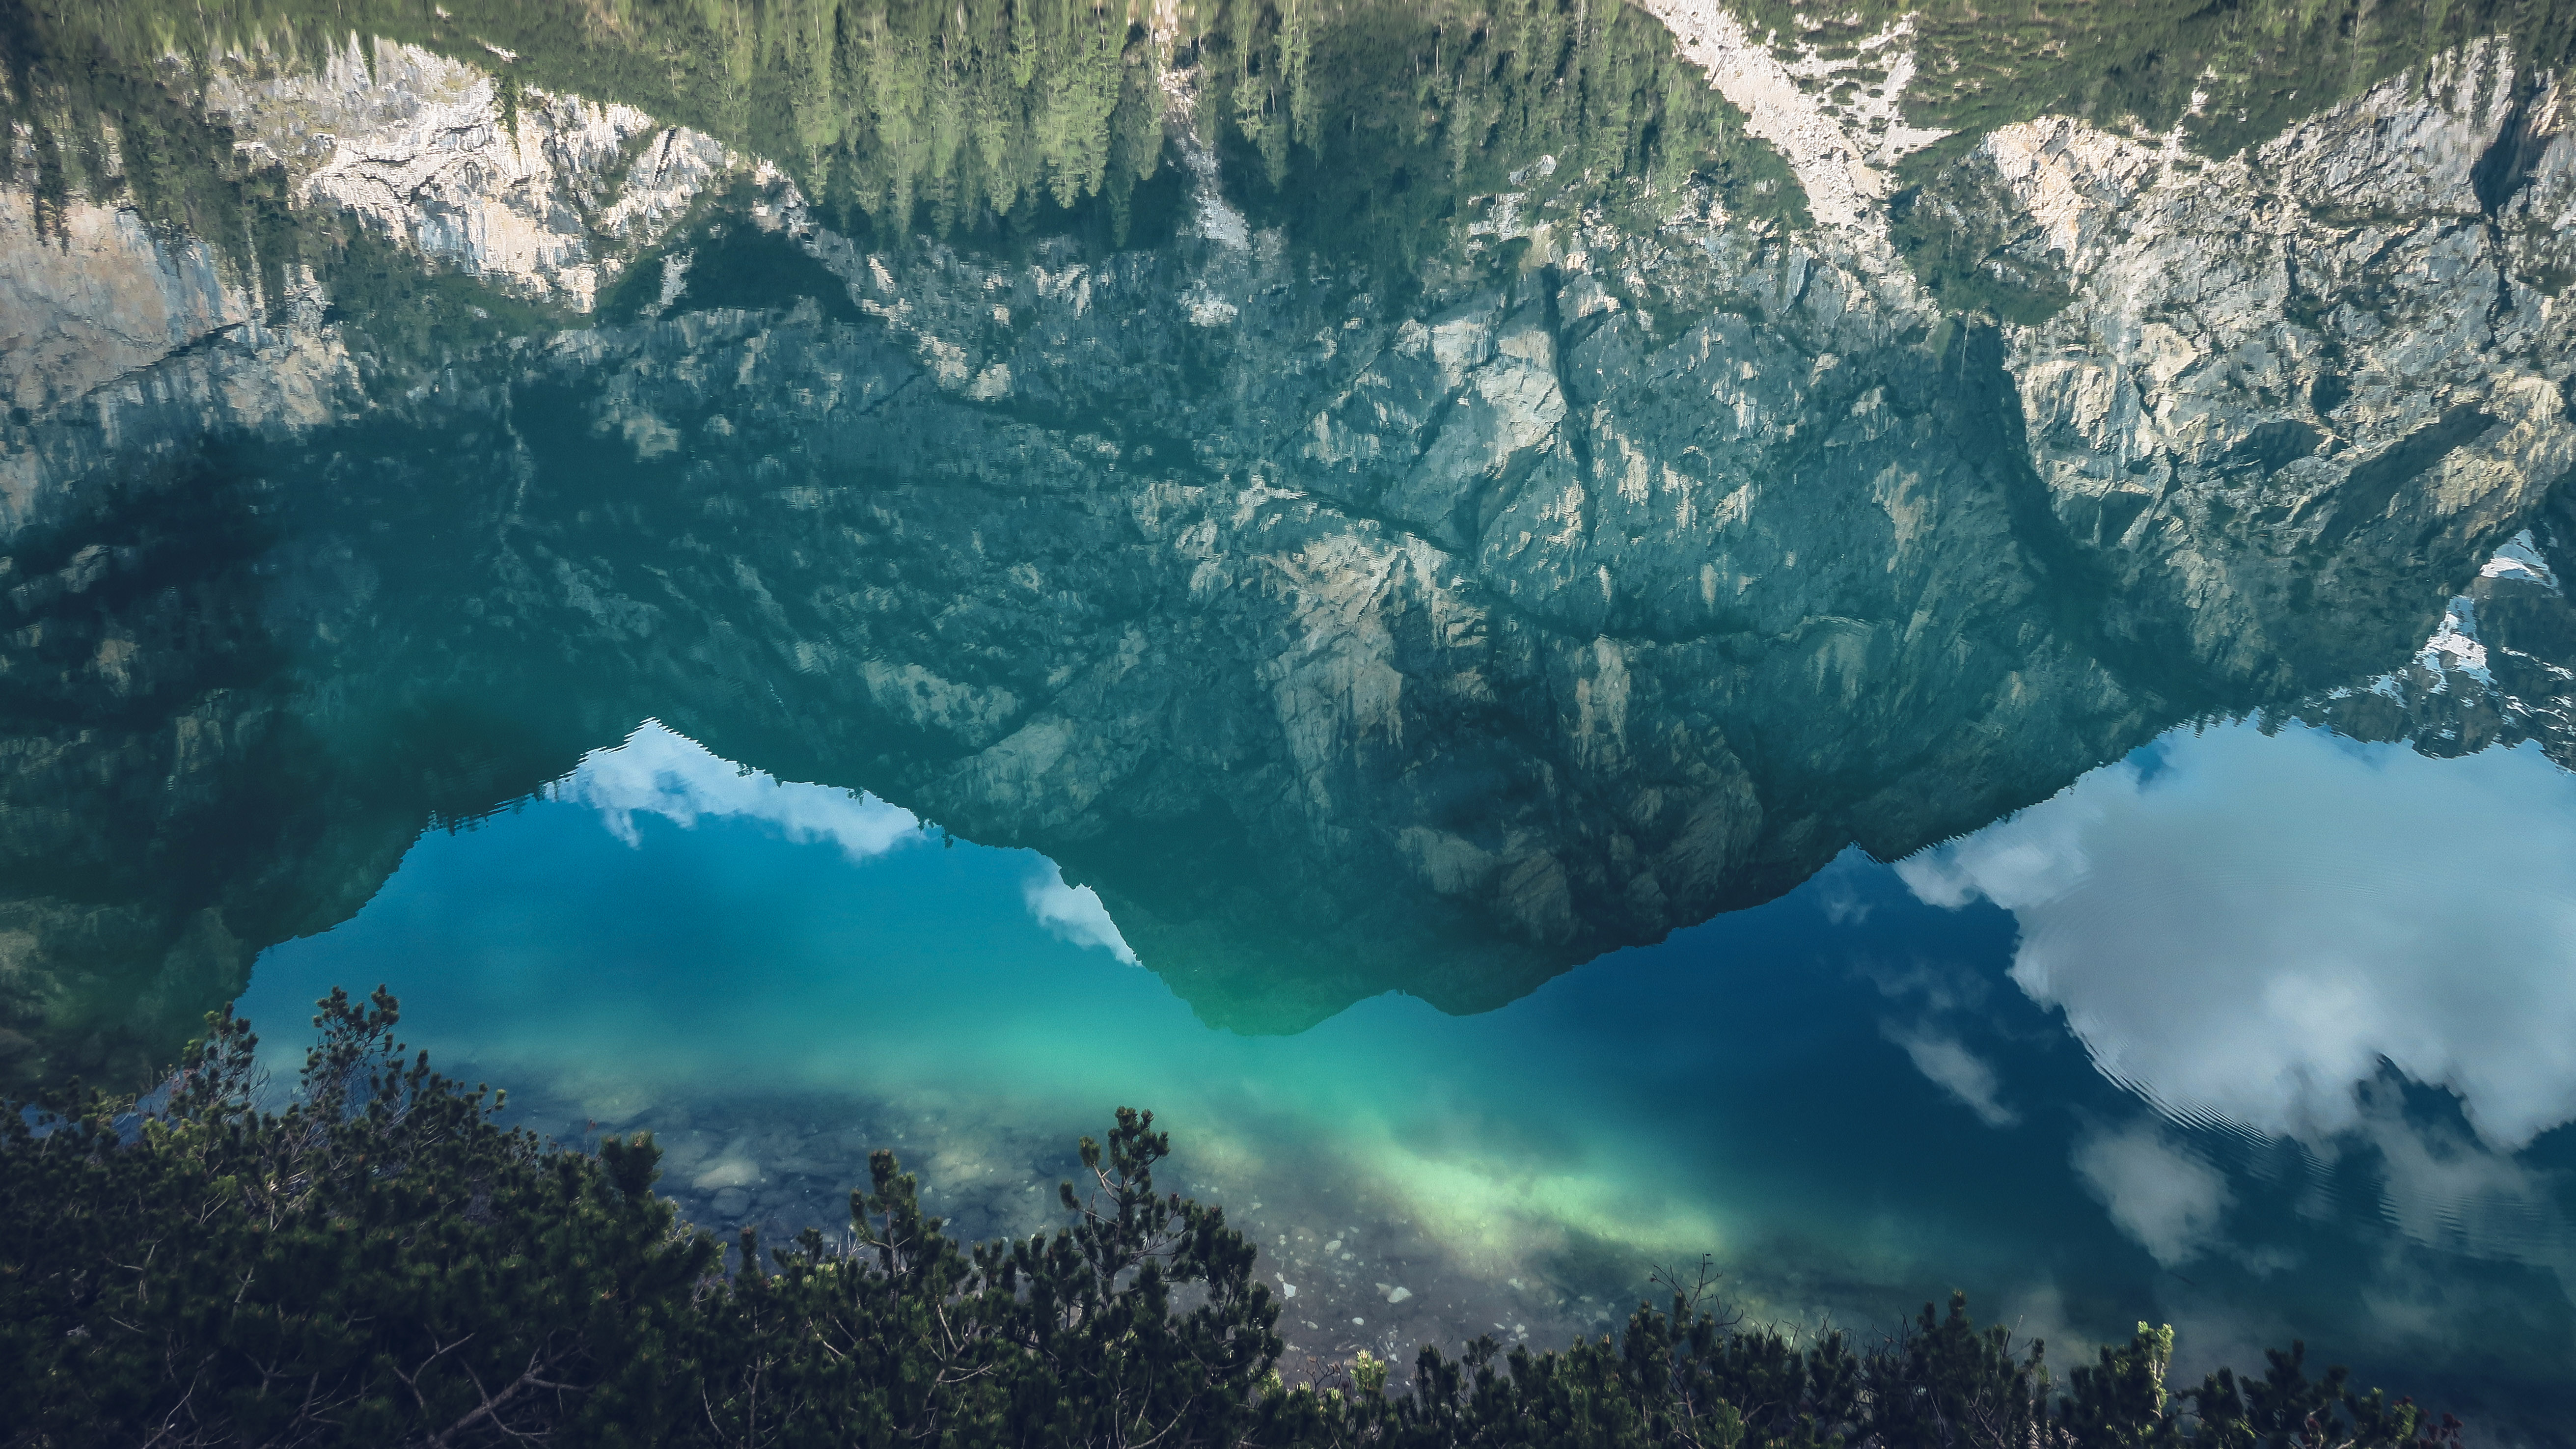 clear water reflection in italy image - free stock photo - public domain photo